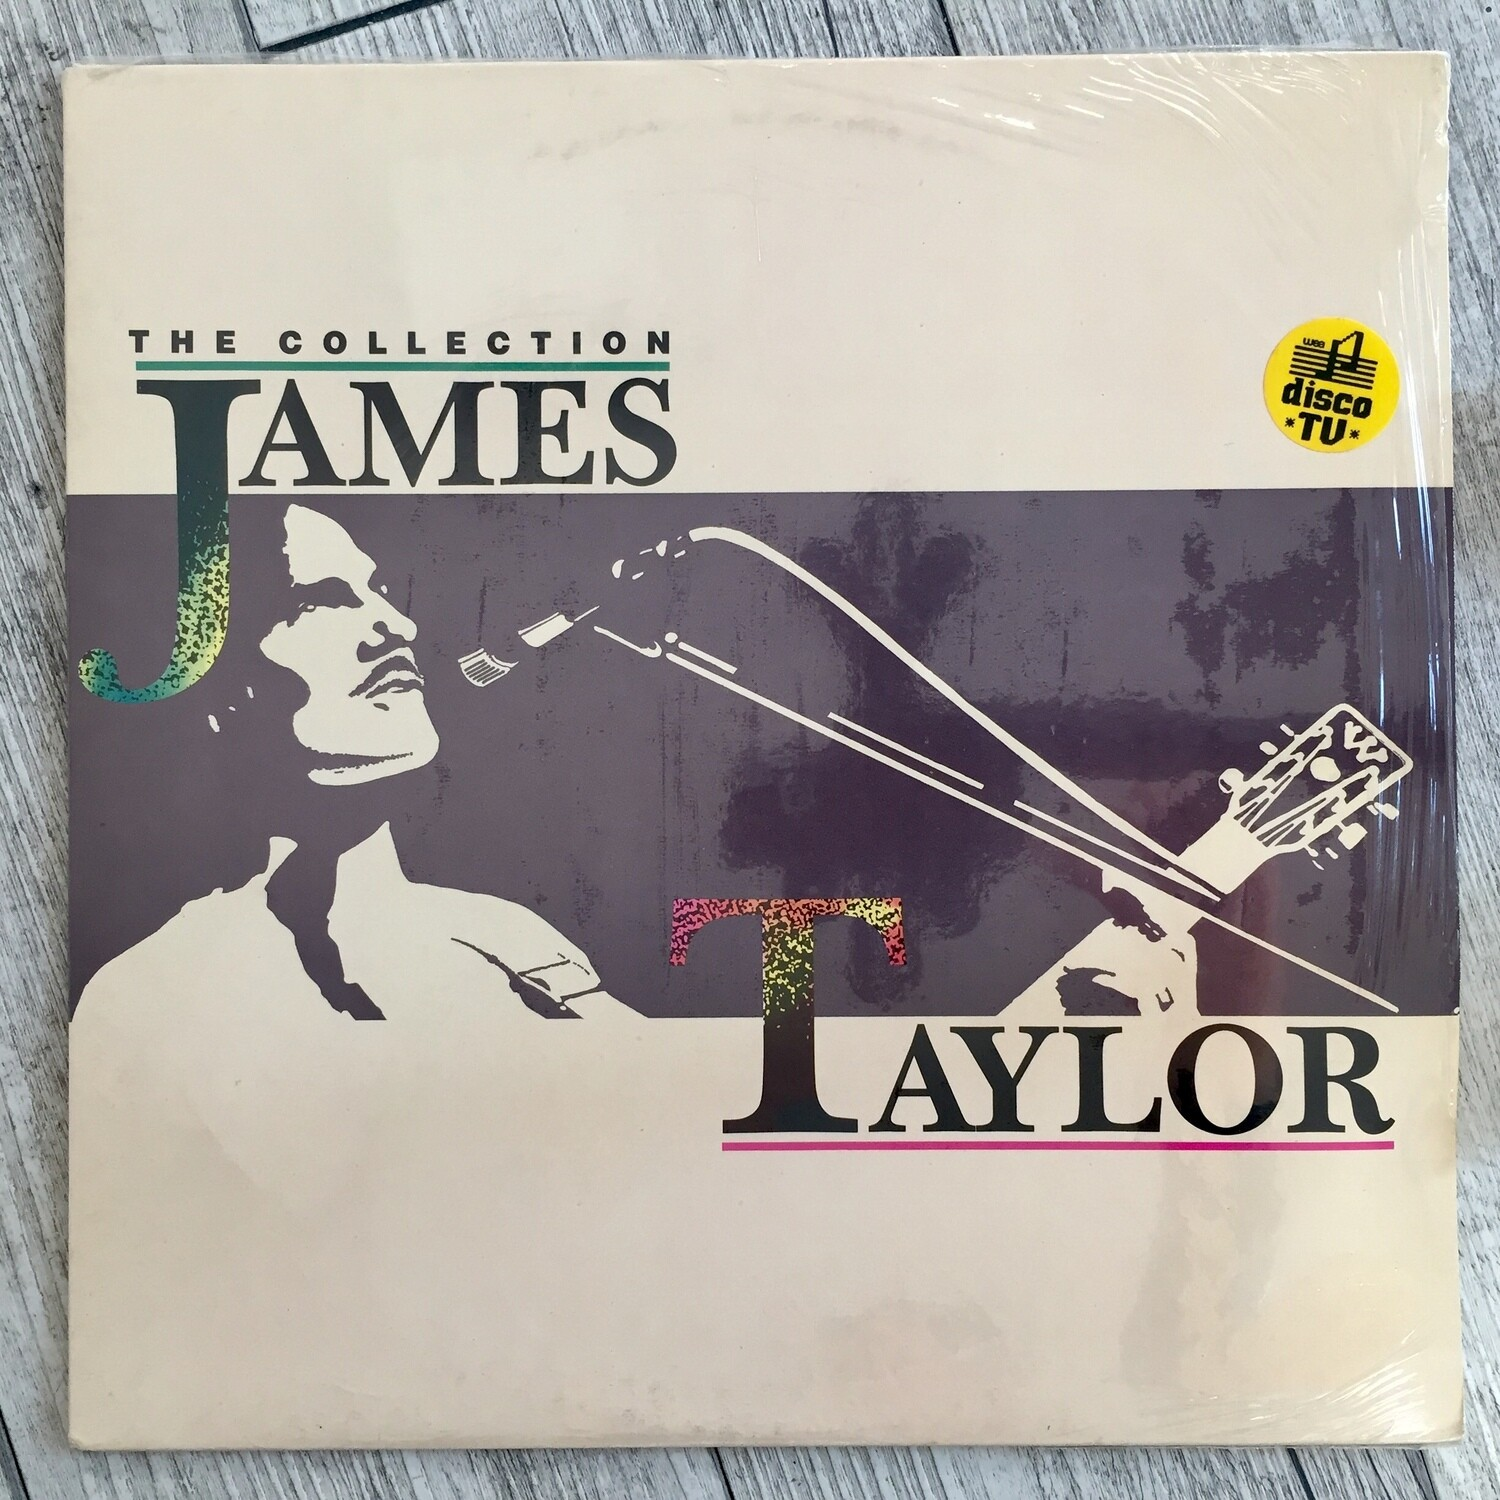 James Taylor - The collection